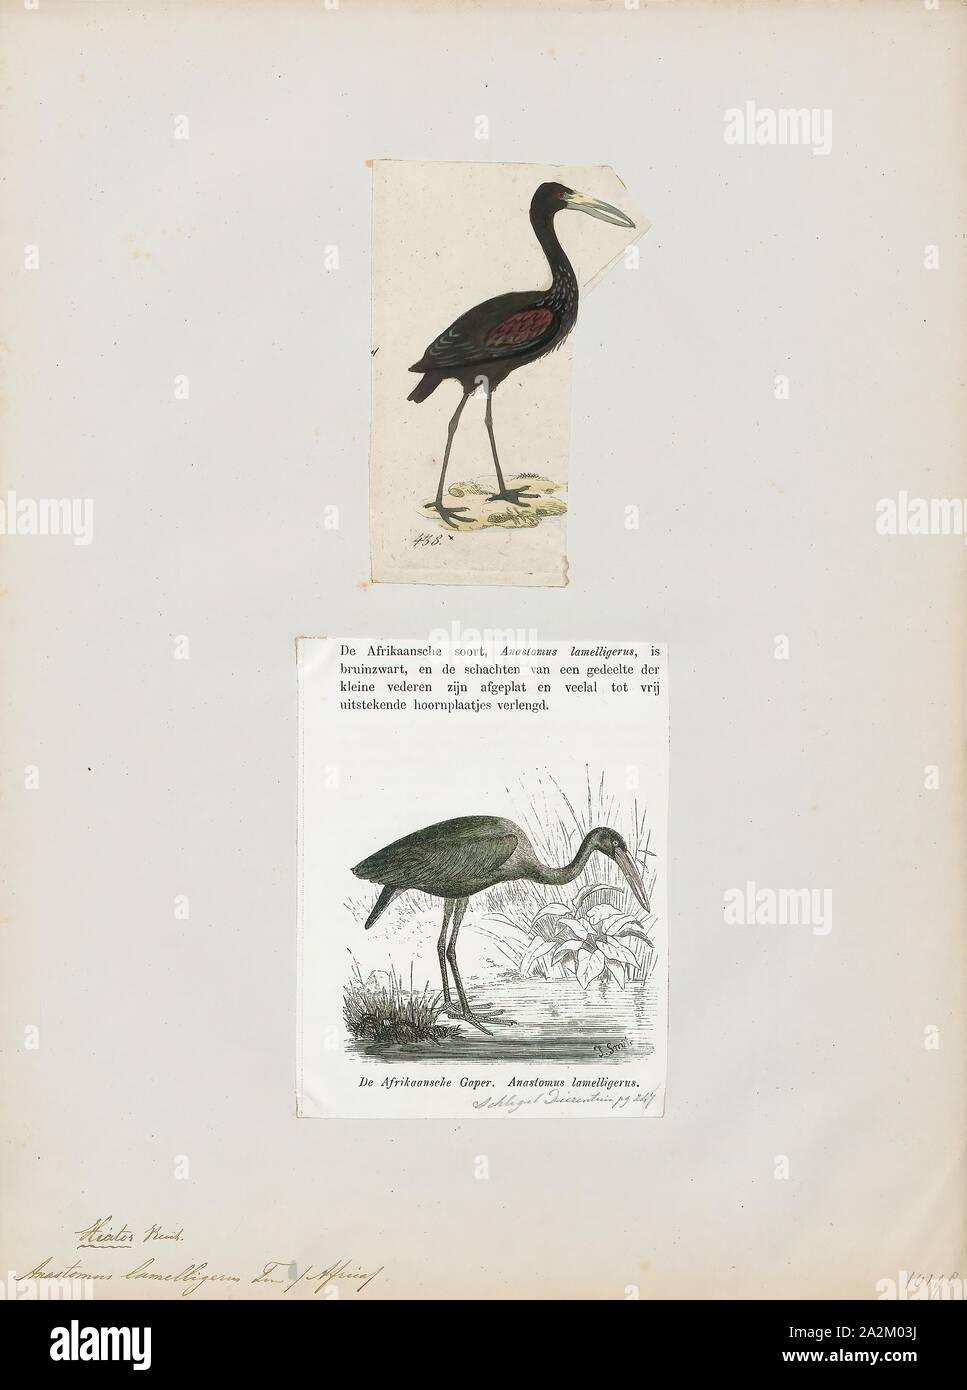 Anastomus lamelligerus, Print, The African openbill (Anastomus lamelligerus) is a species of stork in the family Ciconiidae. It is native to large parts of sub-Saharan Africa., 1700-1880 Stock Photo